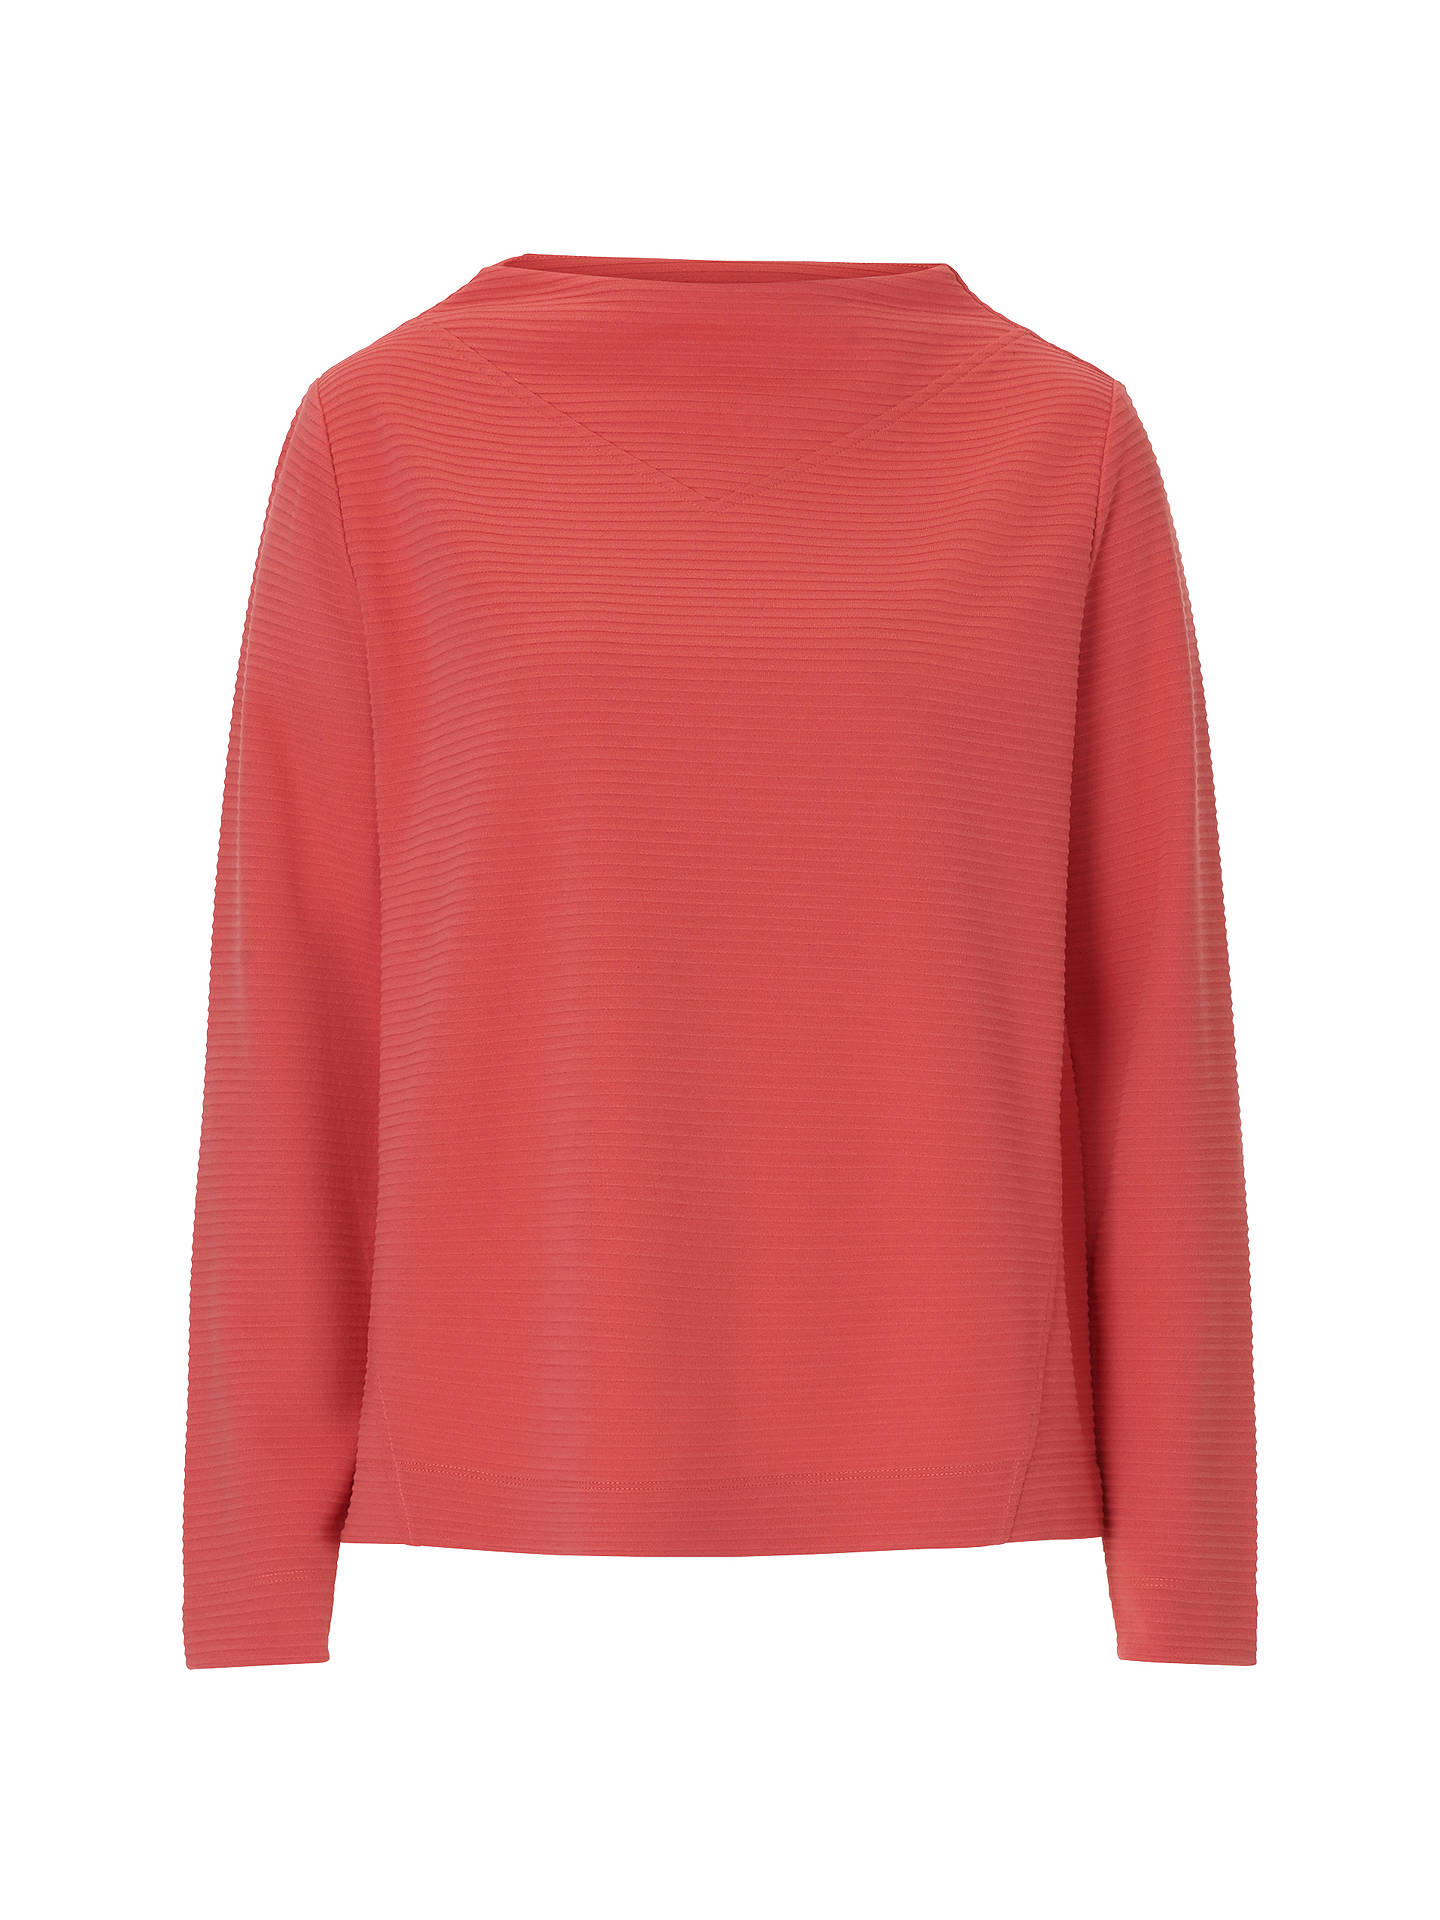 BuyBetty Barclay Ribbed Jersey Top, Red Salmon, 16 Online at johnlewis.com